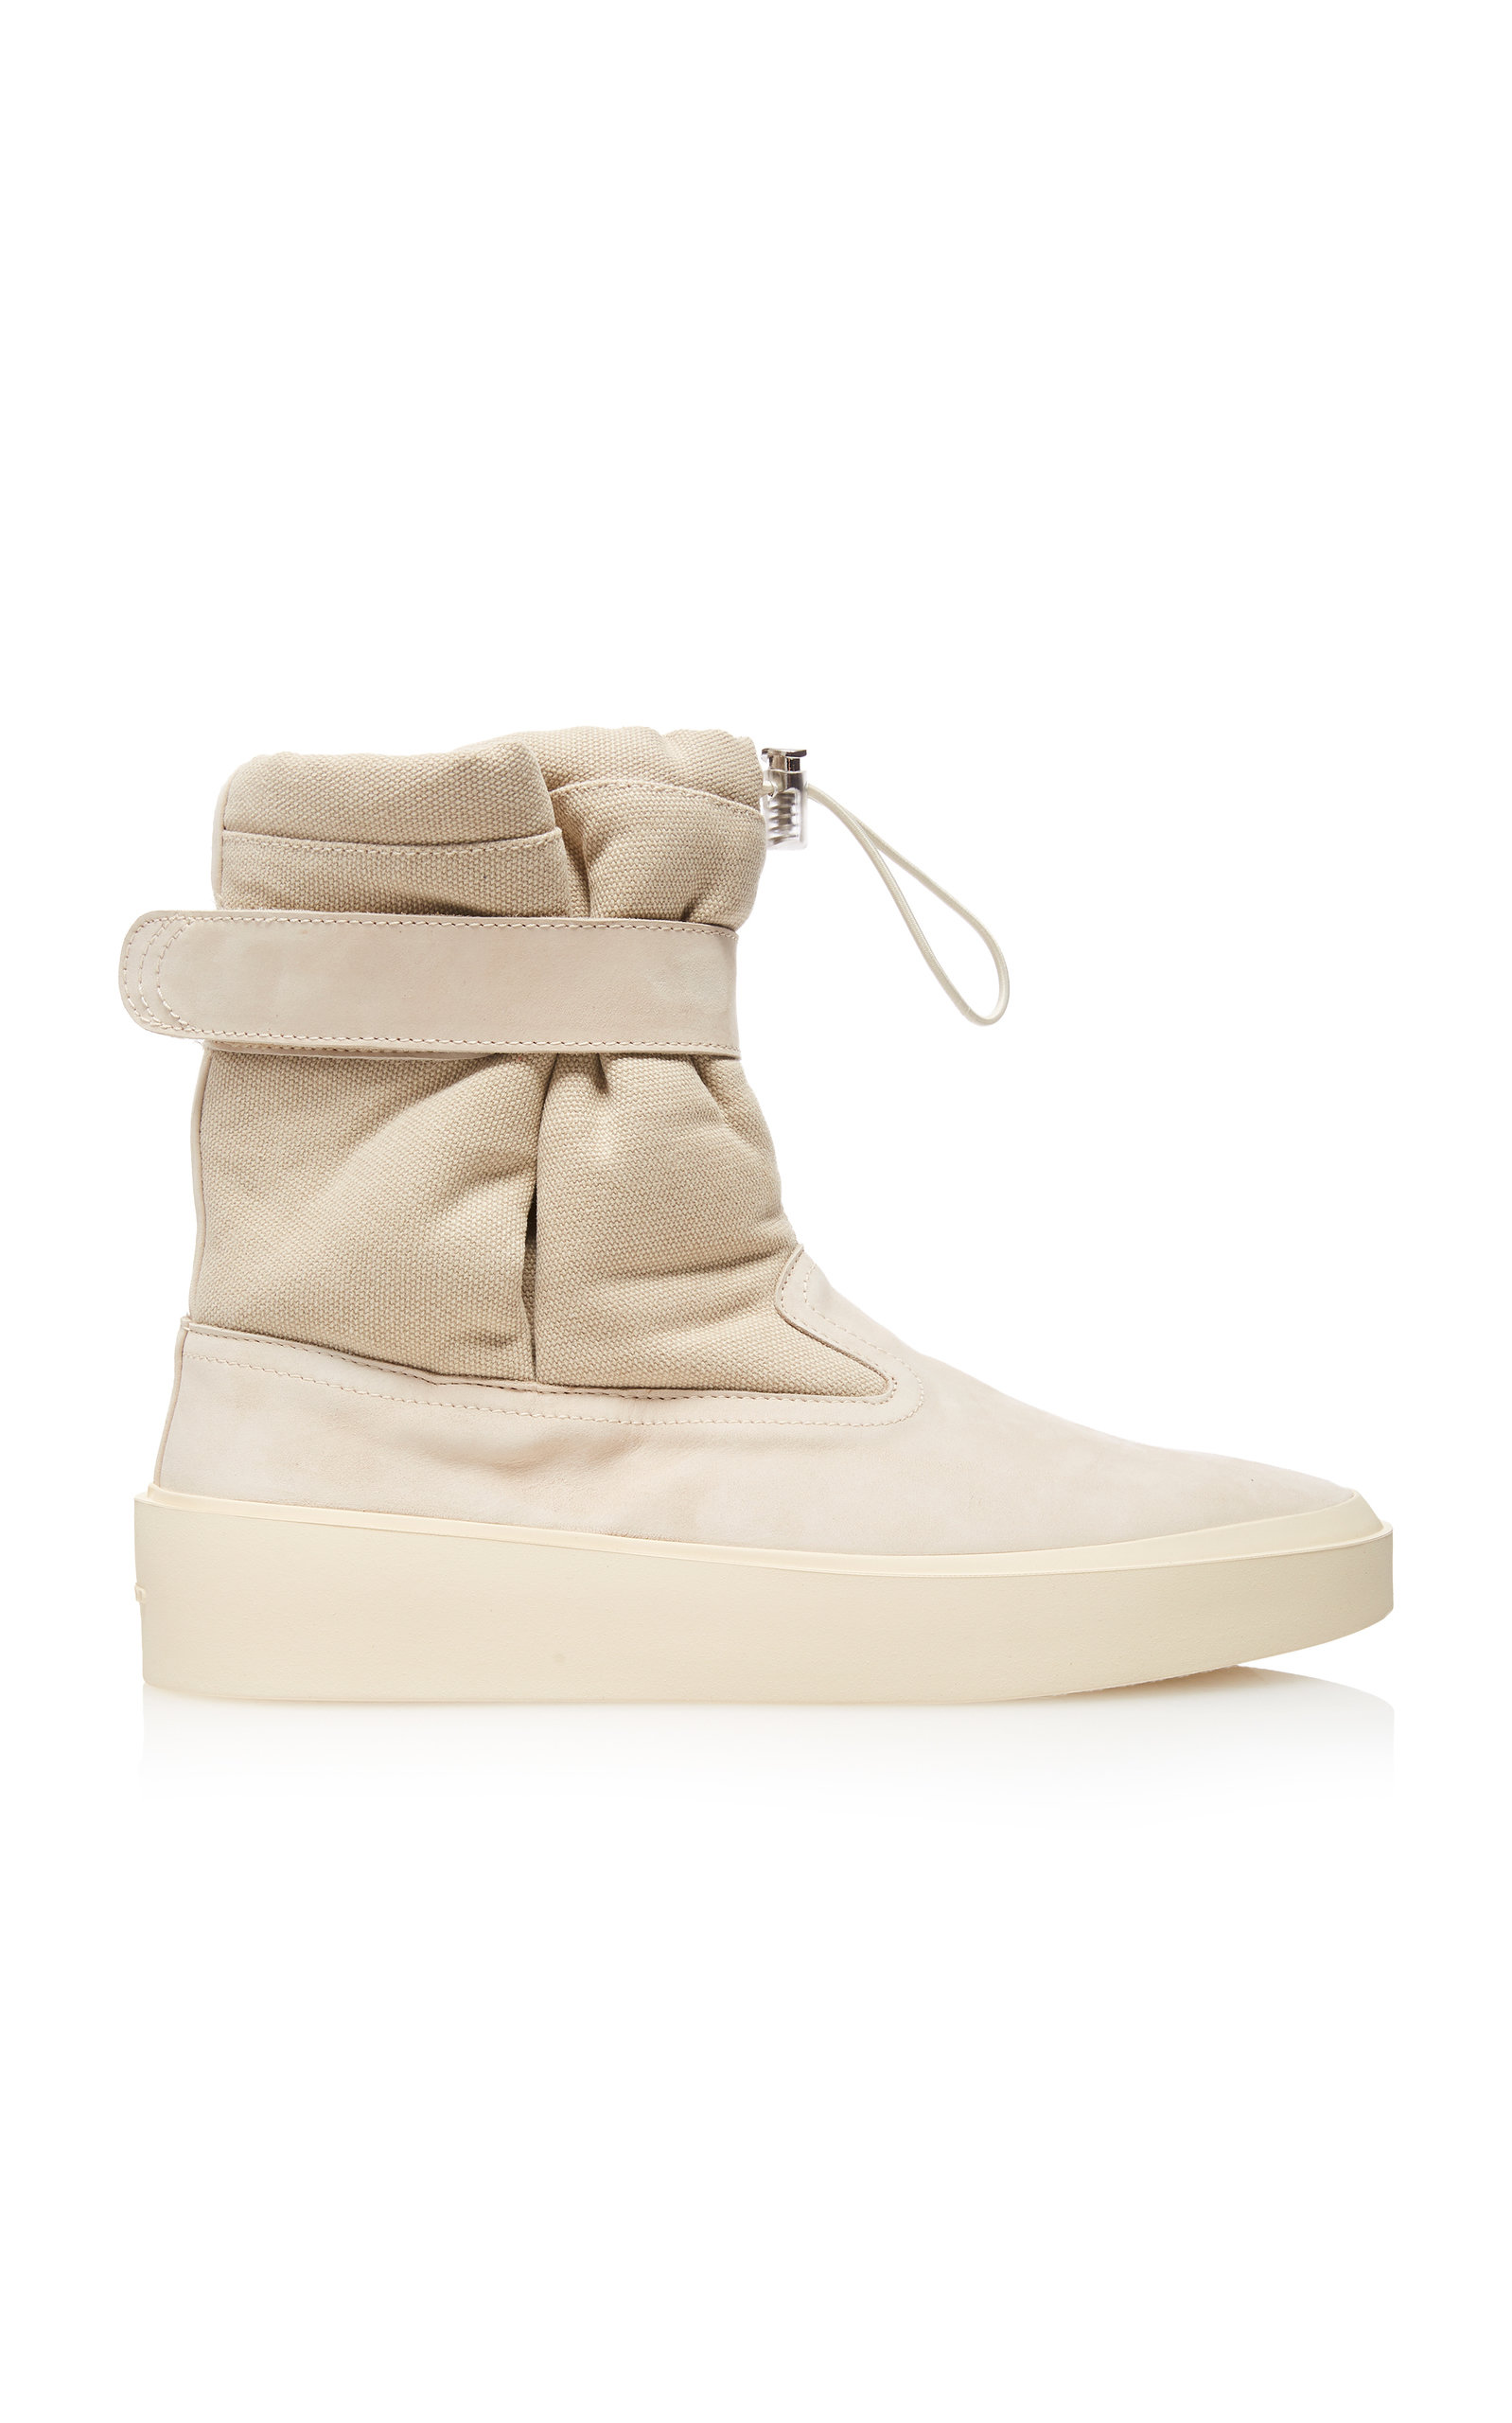 Fear Of God Boots Ski Lounge Suede And Canvas Sneakers